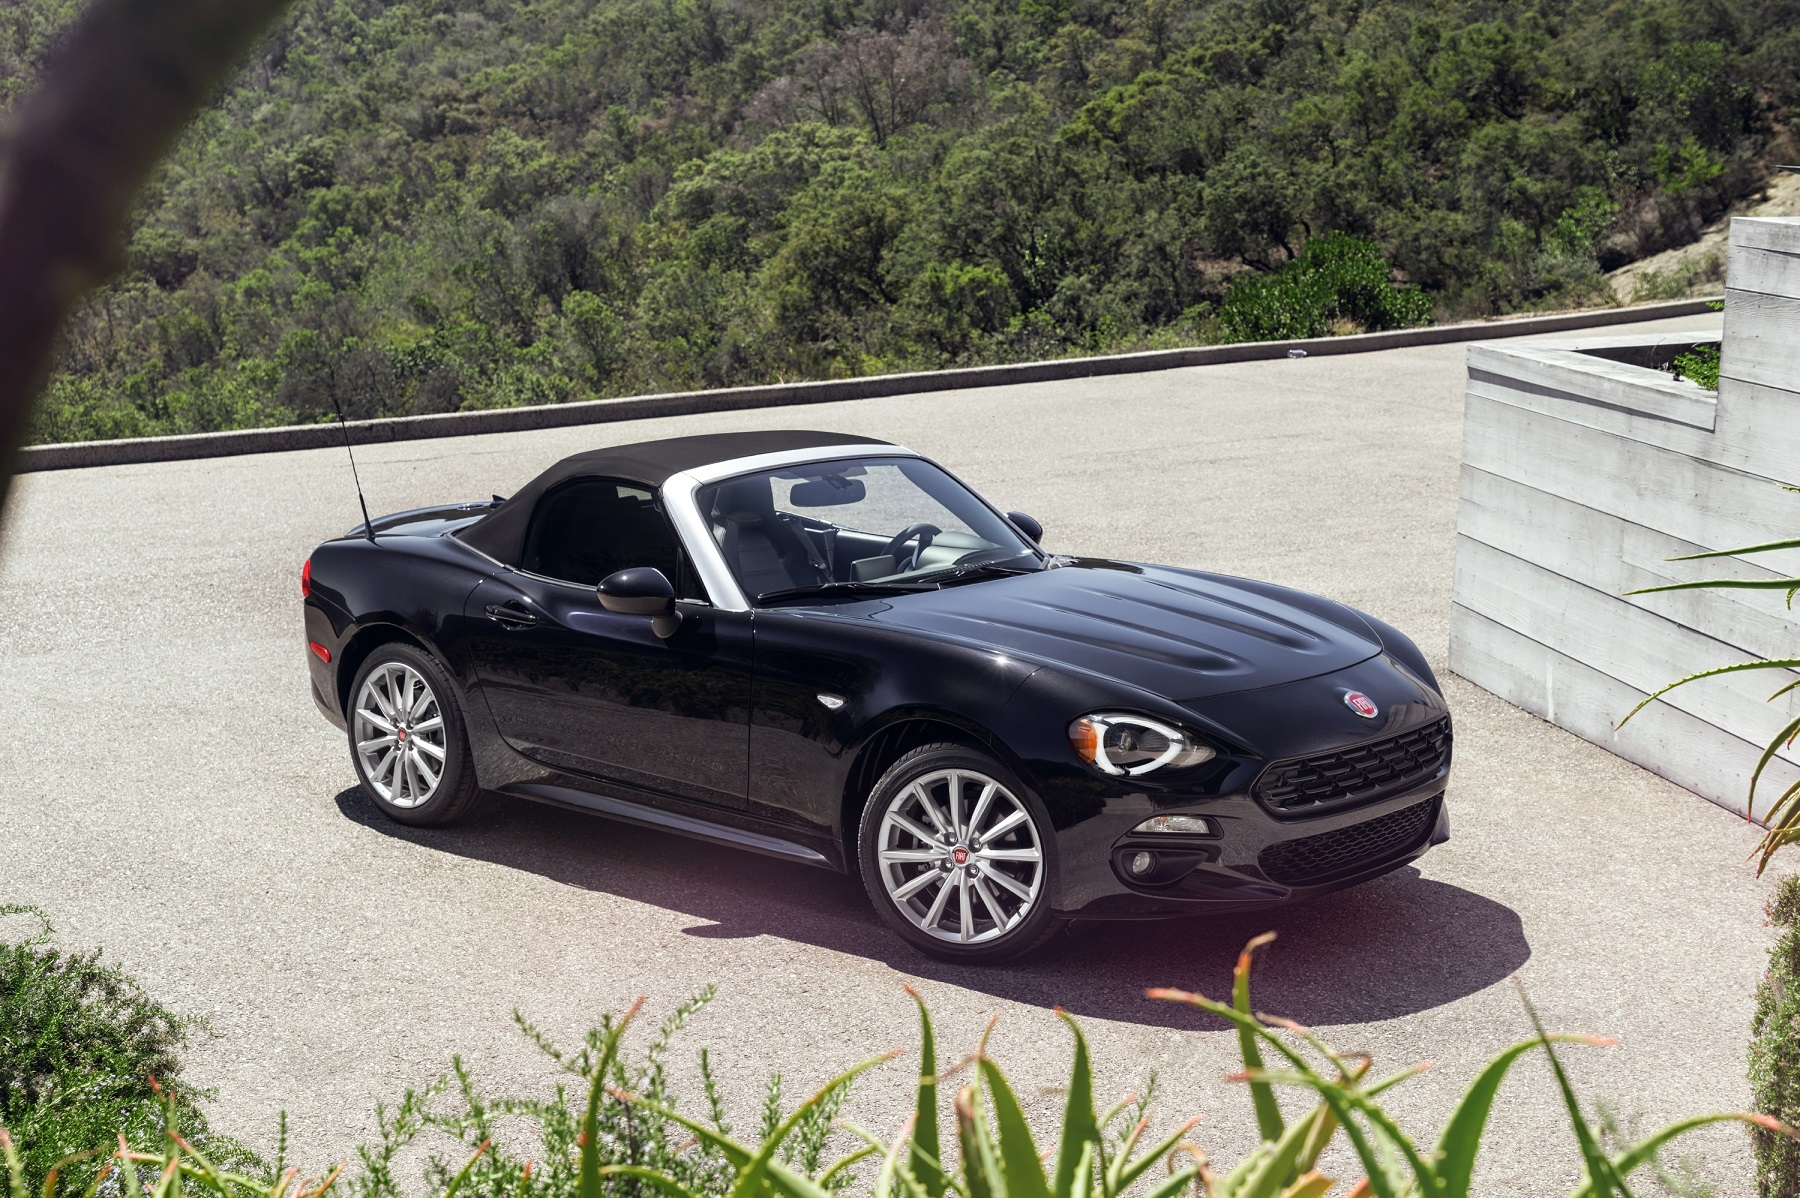 2017 Fiat 124 Spider pays homage to the original model